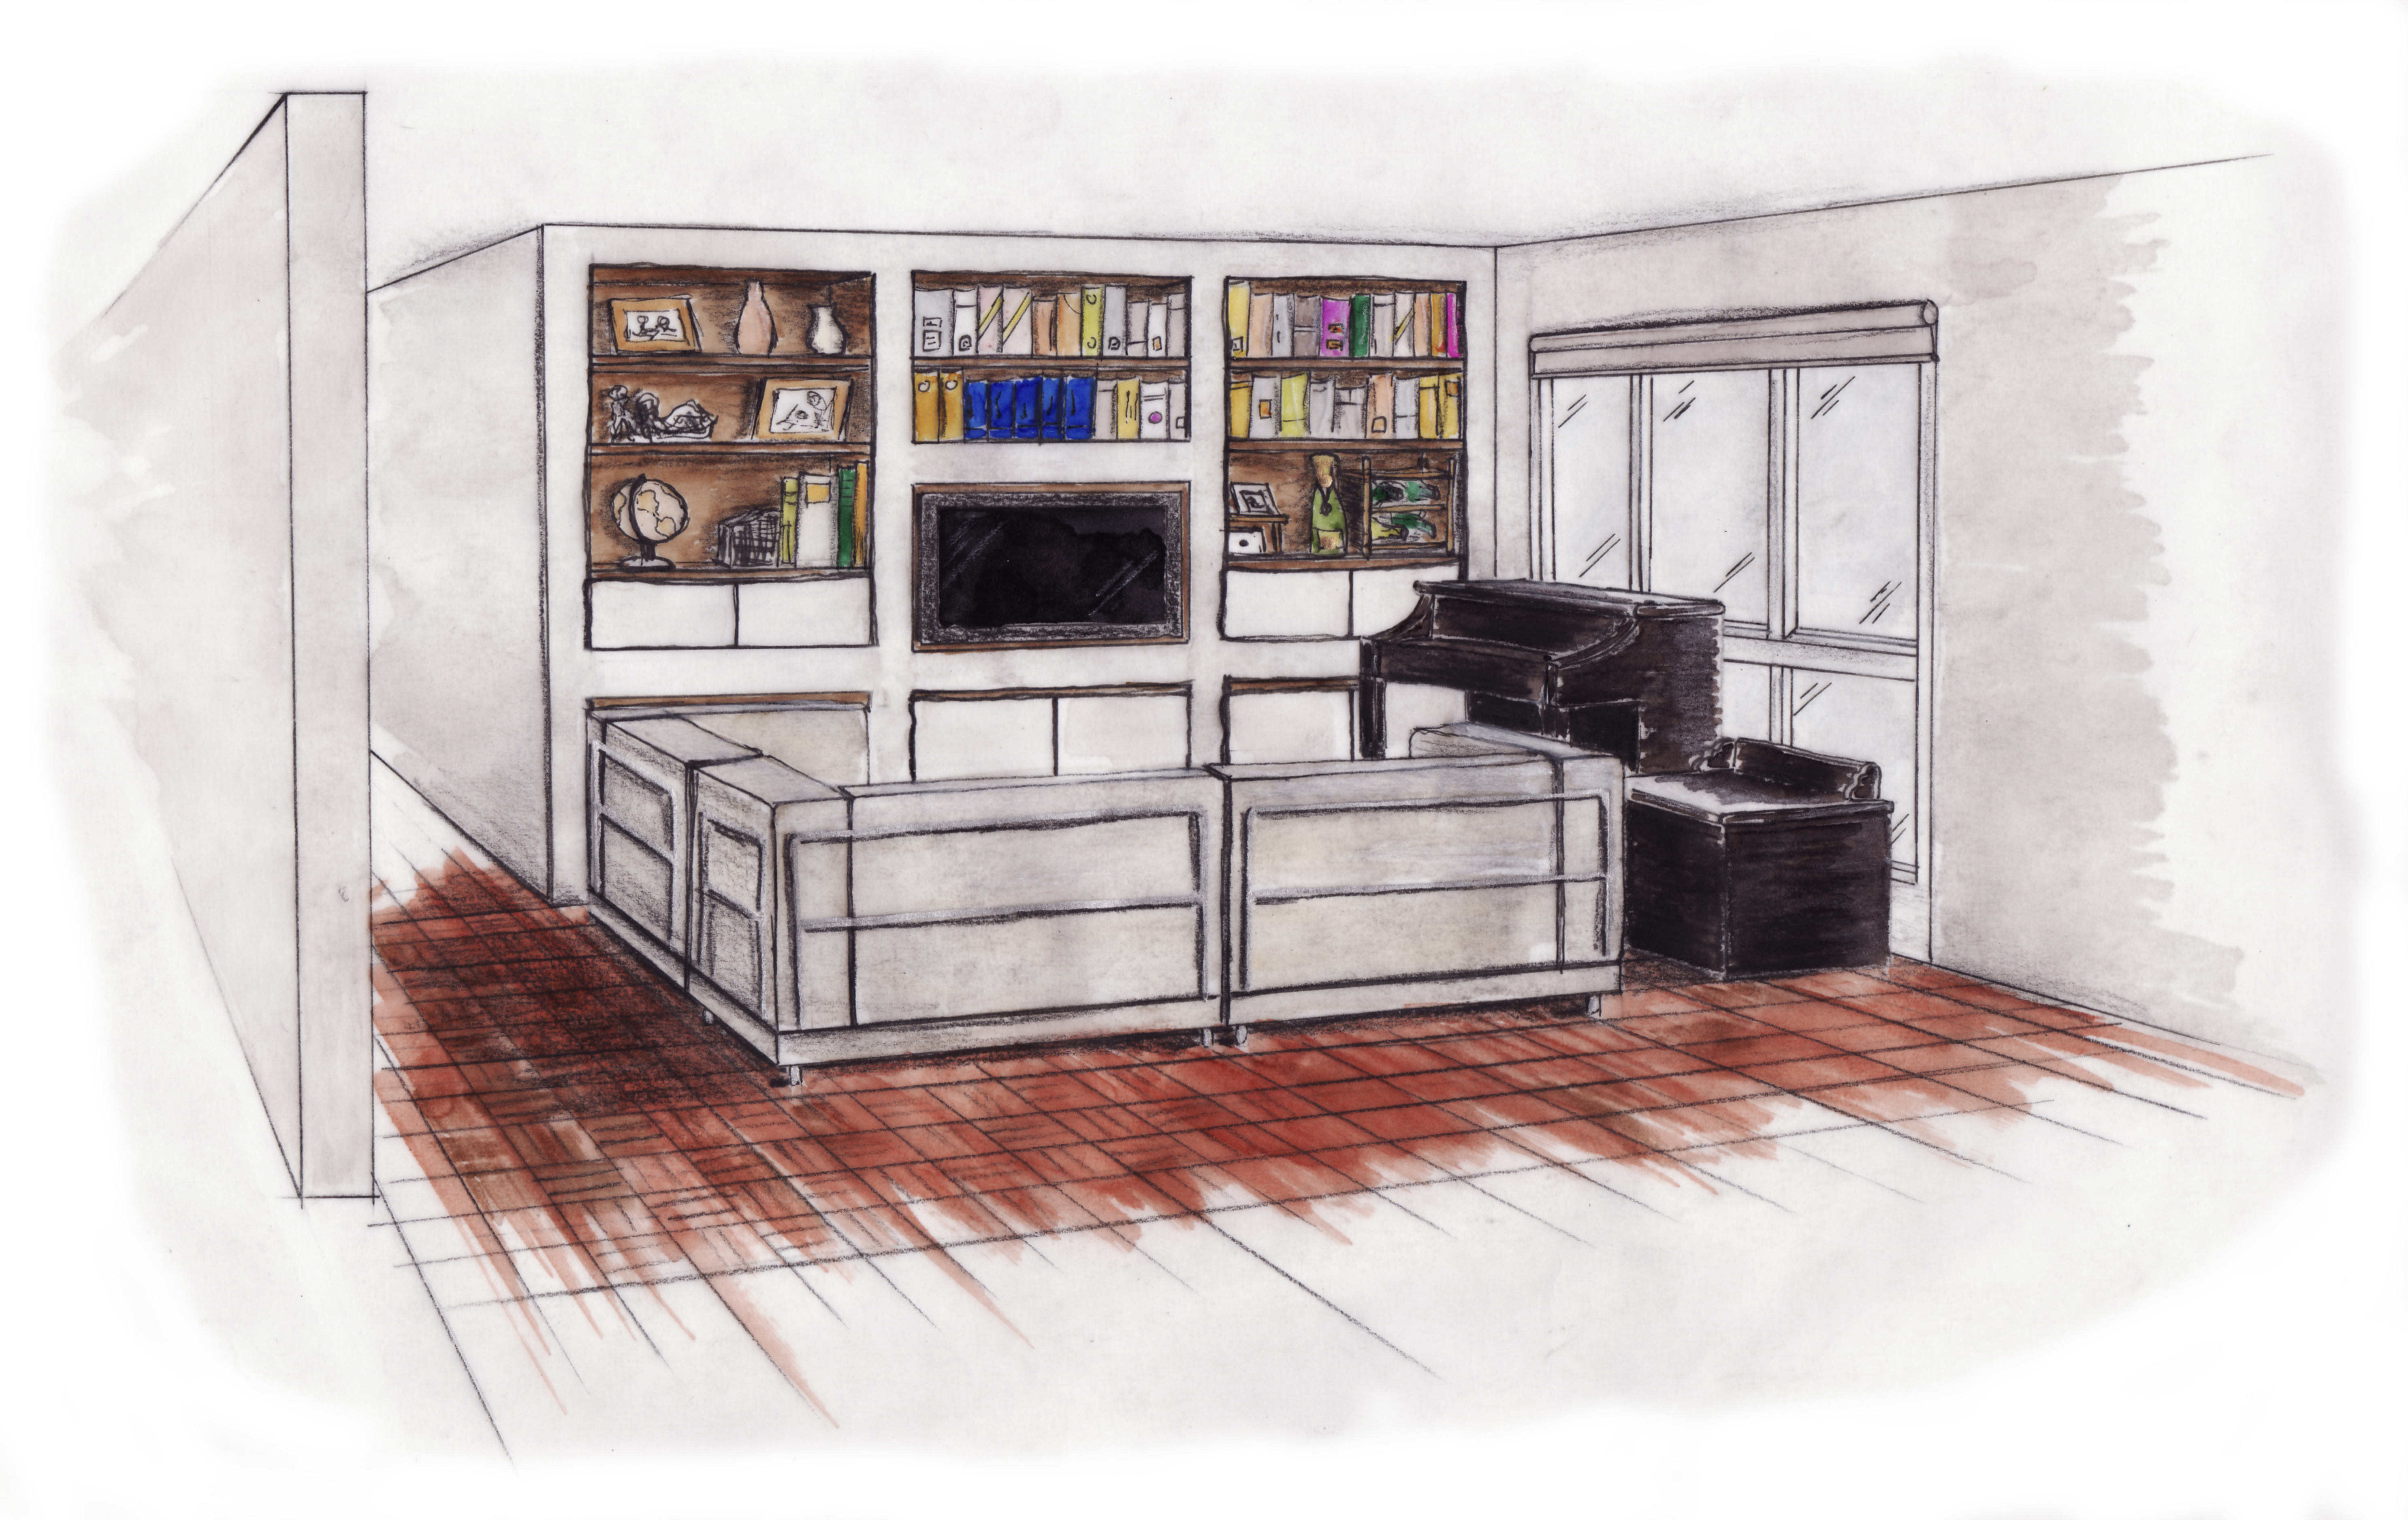 Living room perspective drawing - H Favorite Qview Full Size Living Room Perspective